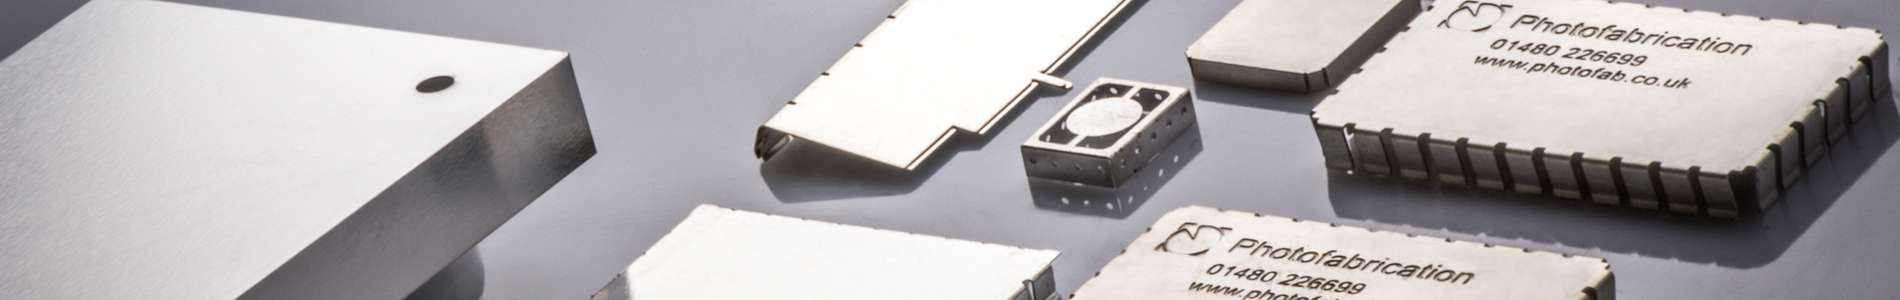 RFI Shielding Products